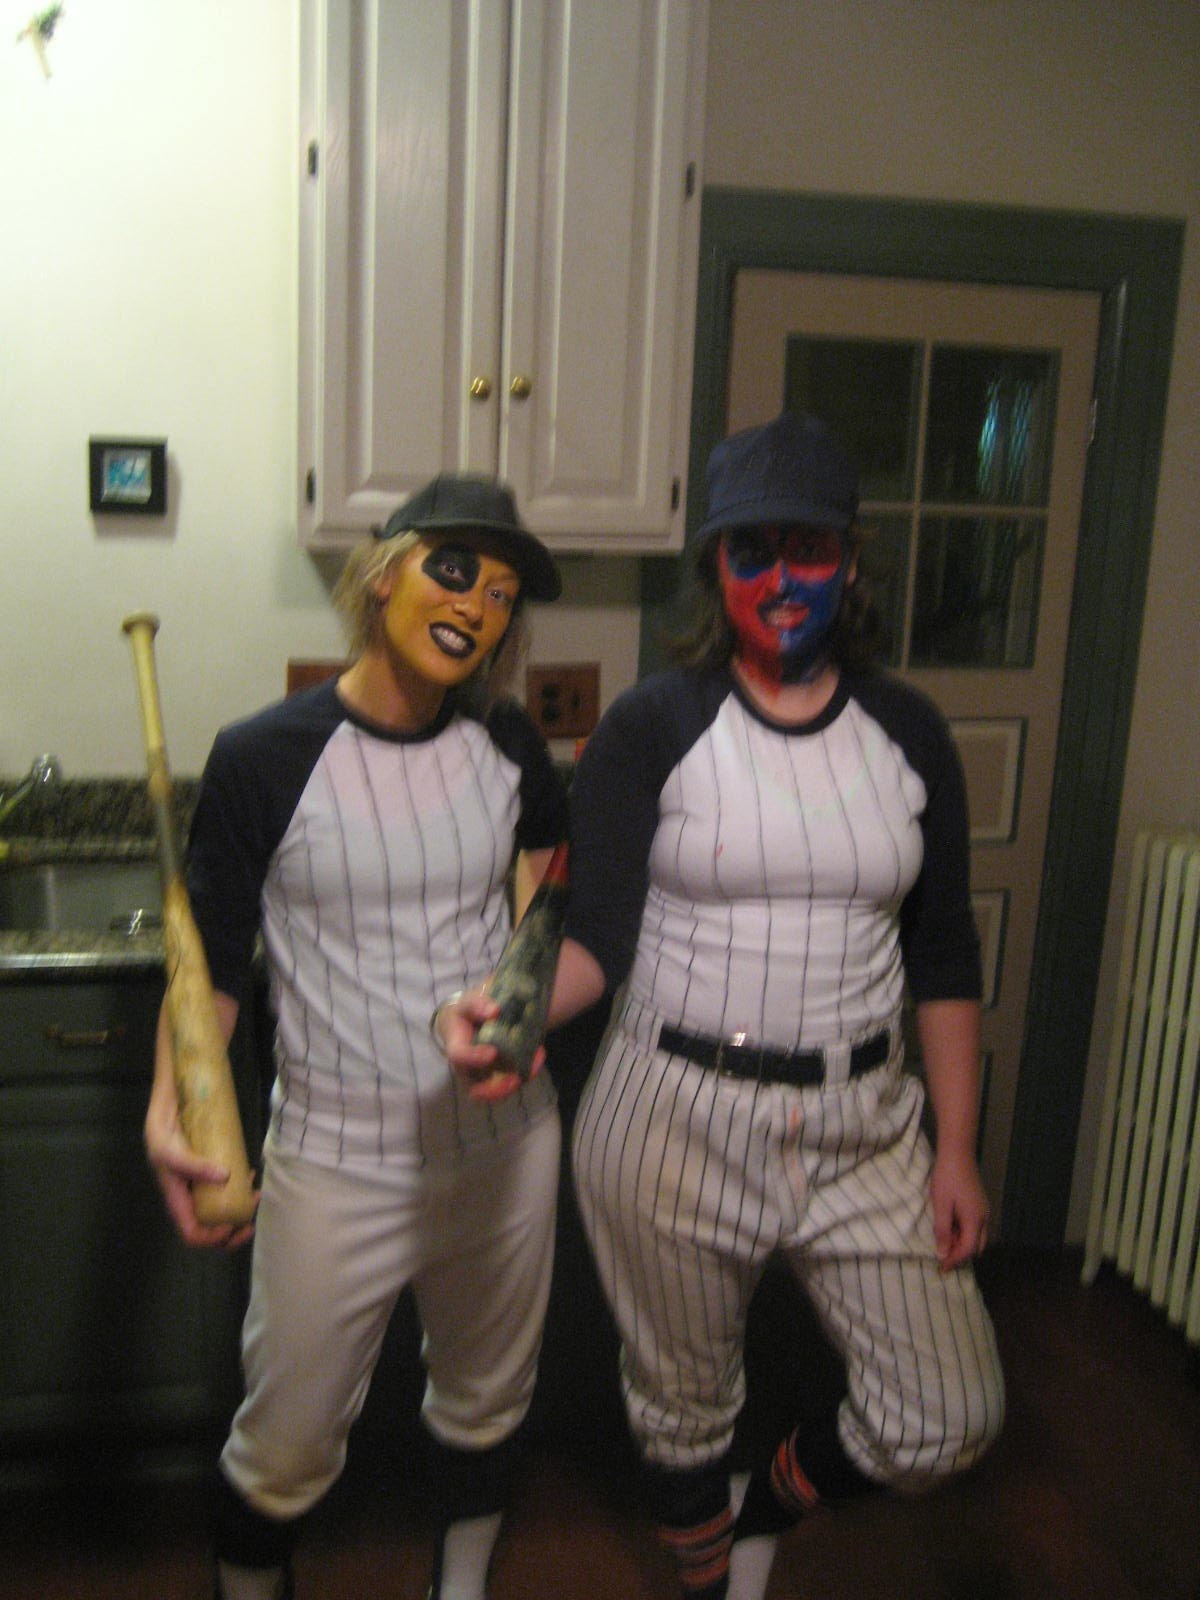 My friend Alex and I went to a party last night dressed as the Baseball Furies gang from The Warriors movie. Scary! Happy Halloween everyone!  sc 1 st  Errant & E.r.r.a.n.t: Happy Halloween!